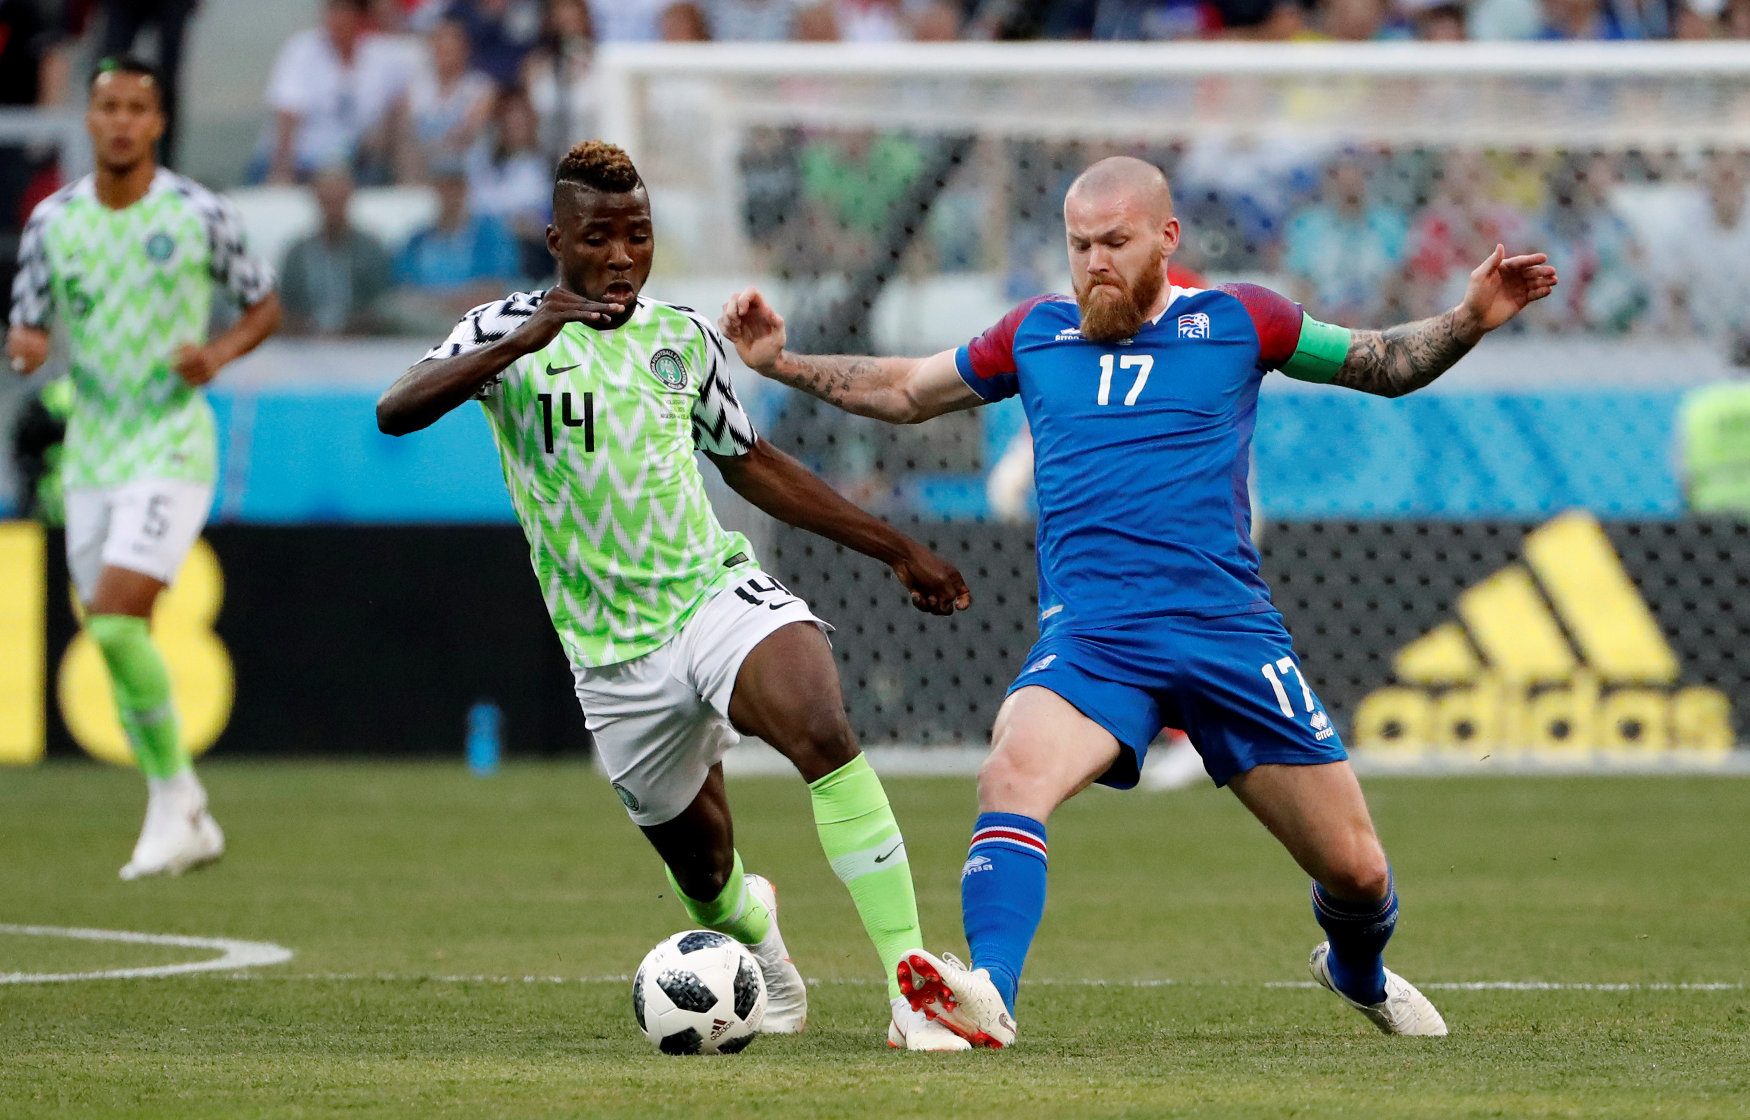 2018-06-22T151342Z_755936857_RC13B8E12140_RTRMADP_3_SOCCER-WORLDCUP-NGA-ICE